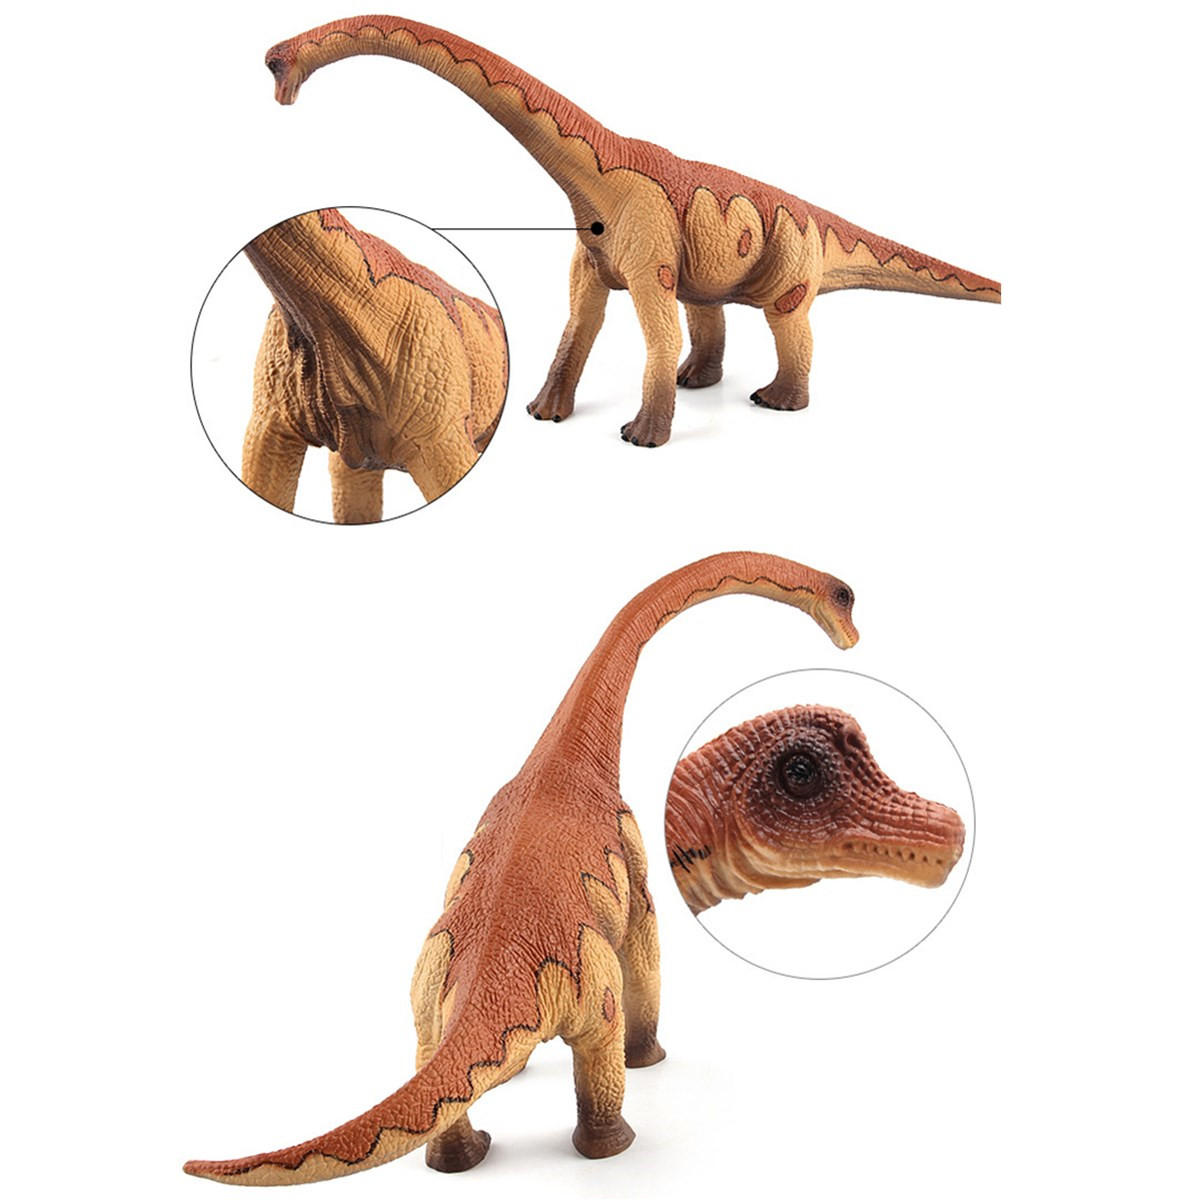 Grande Brachiosaurus Dinosaur Toy Realistic Diecast Model Solid Plastic Gift To Kids - 5